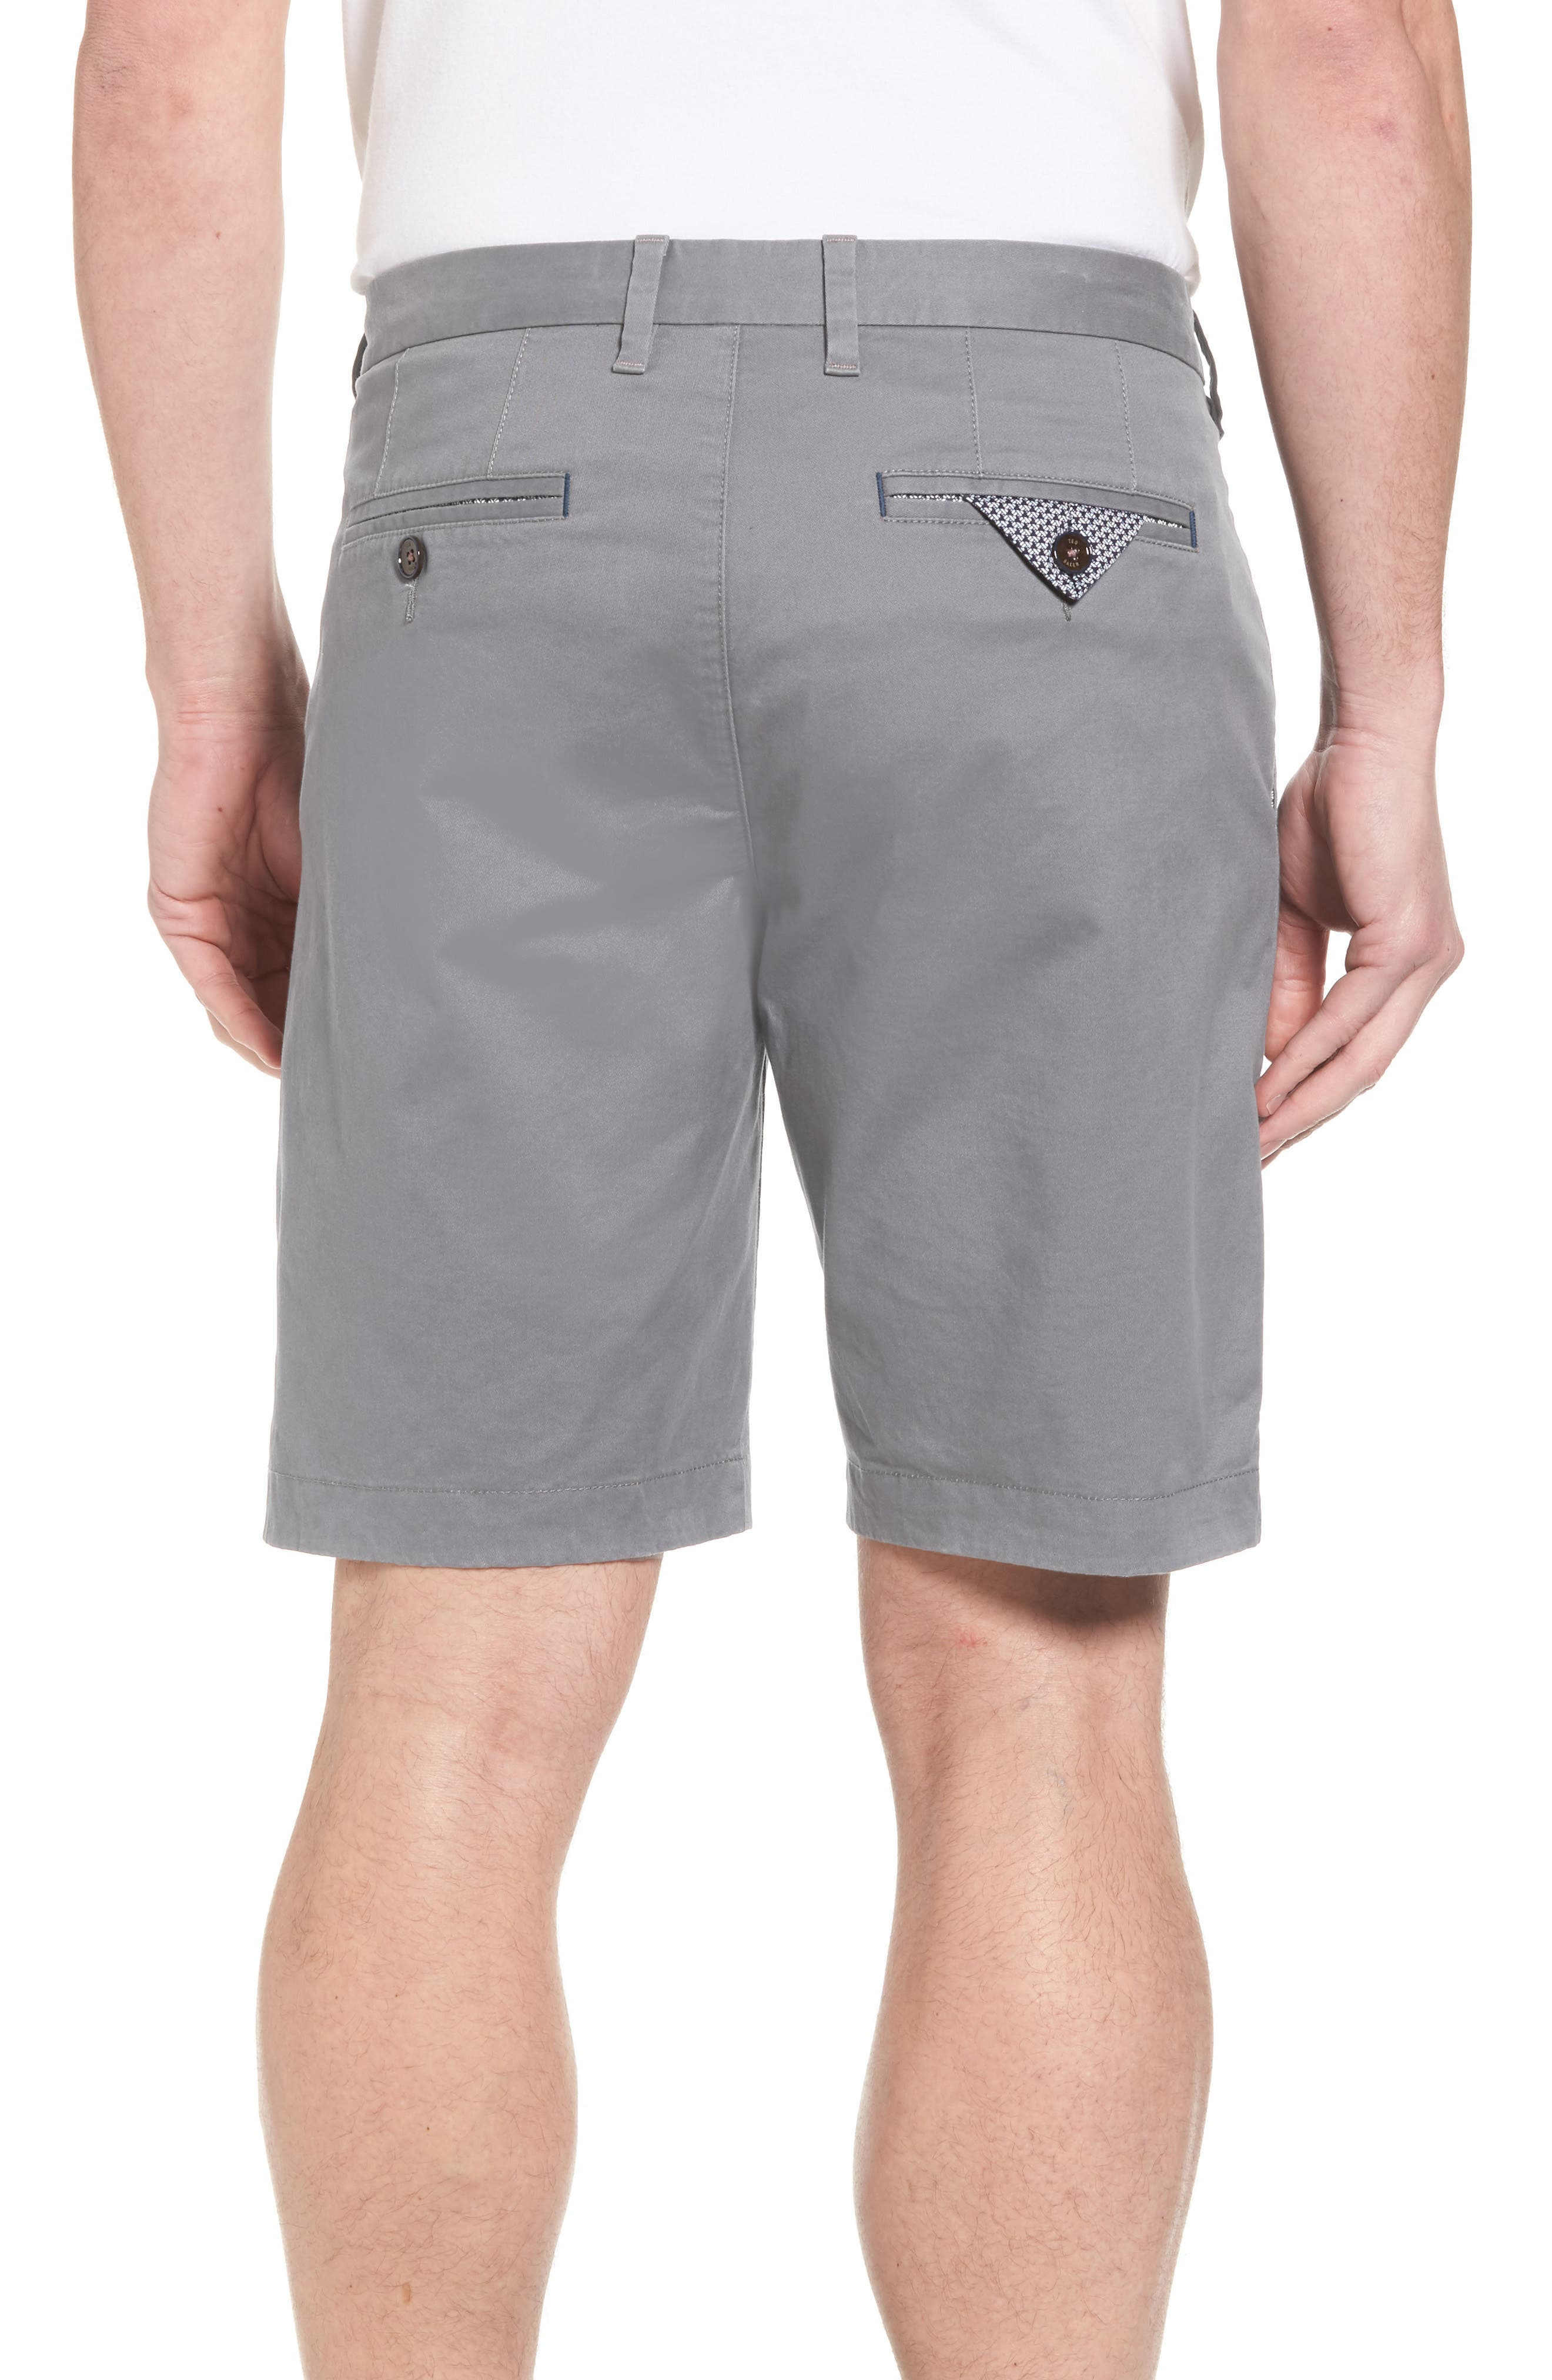 Proshor Slim Fit Chino Shorts,                             Alternate thumbnail 2, color,                             050